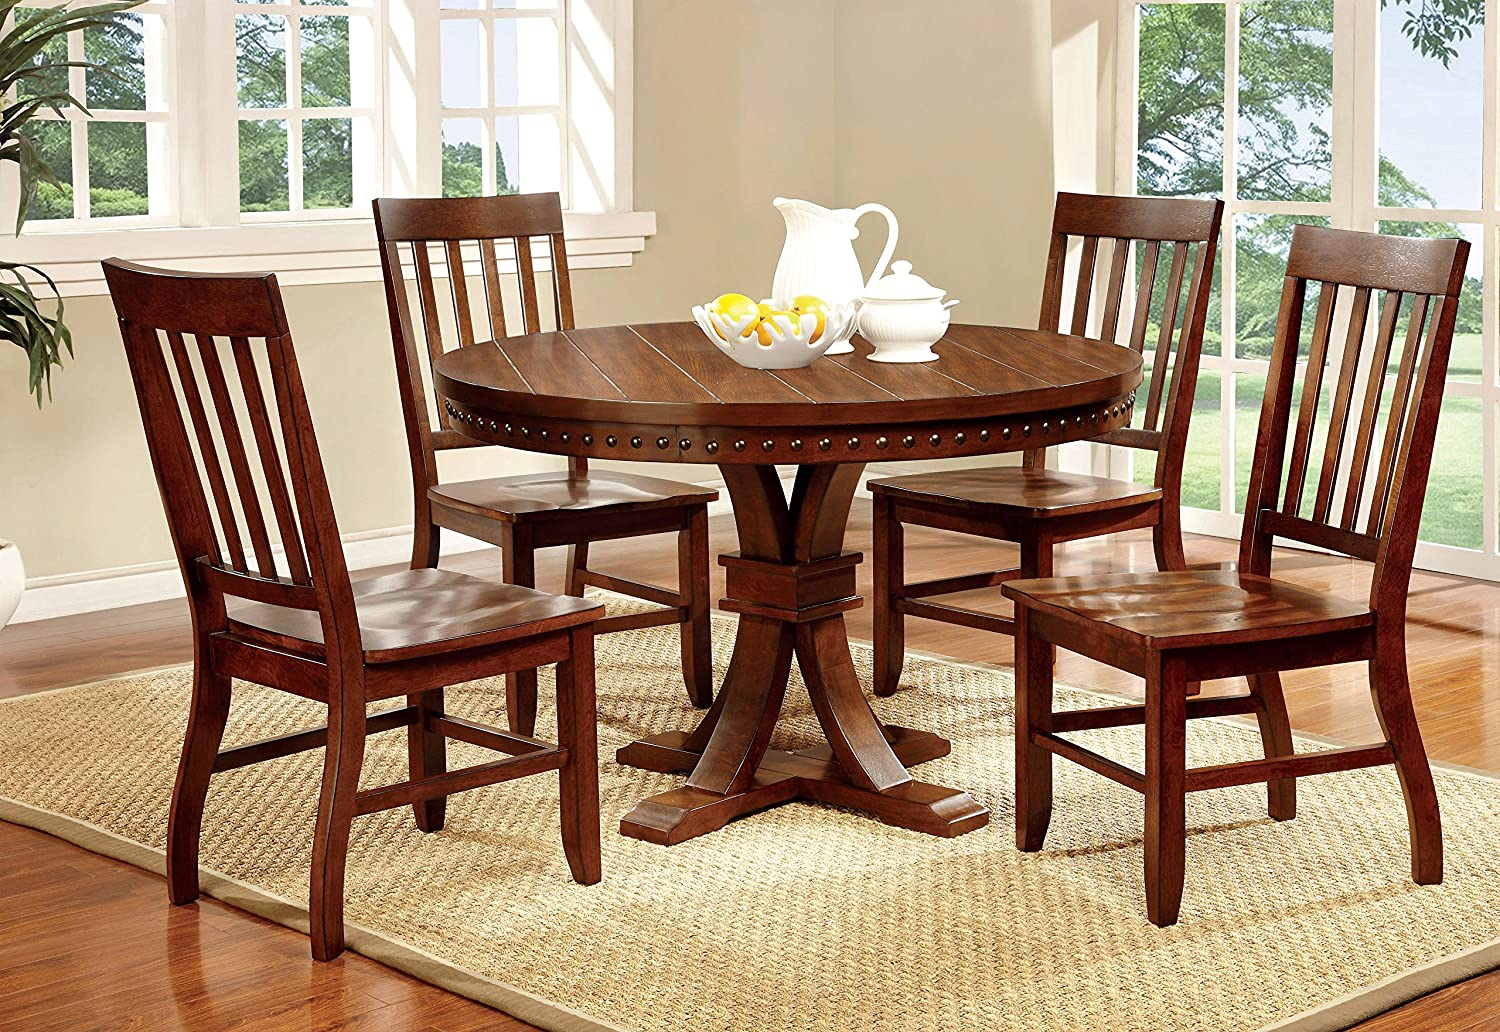 Amazon.com - Furniture of America Castile 5-Piece Transitional Round ...